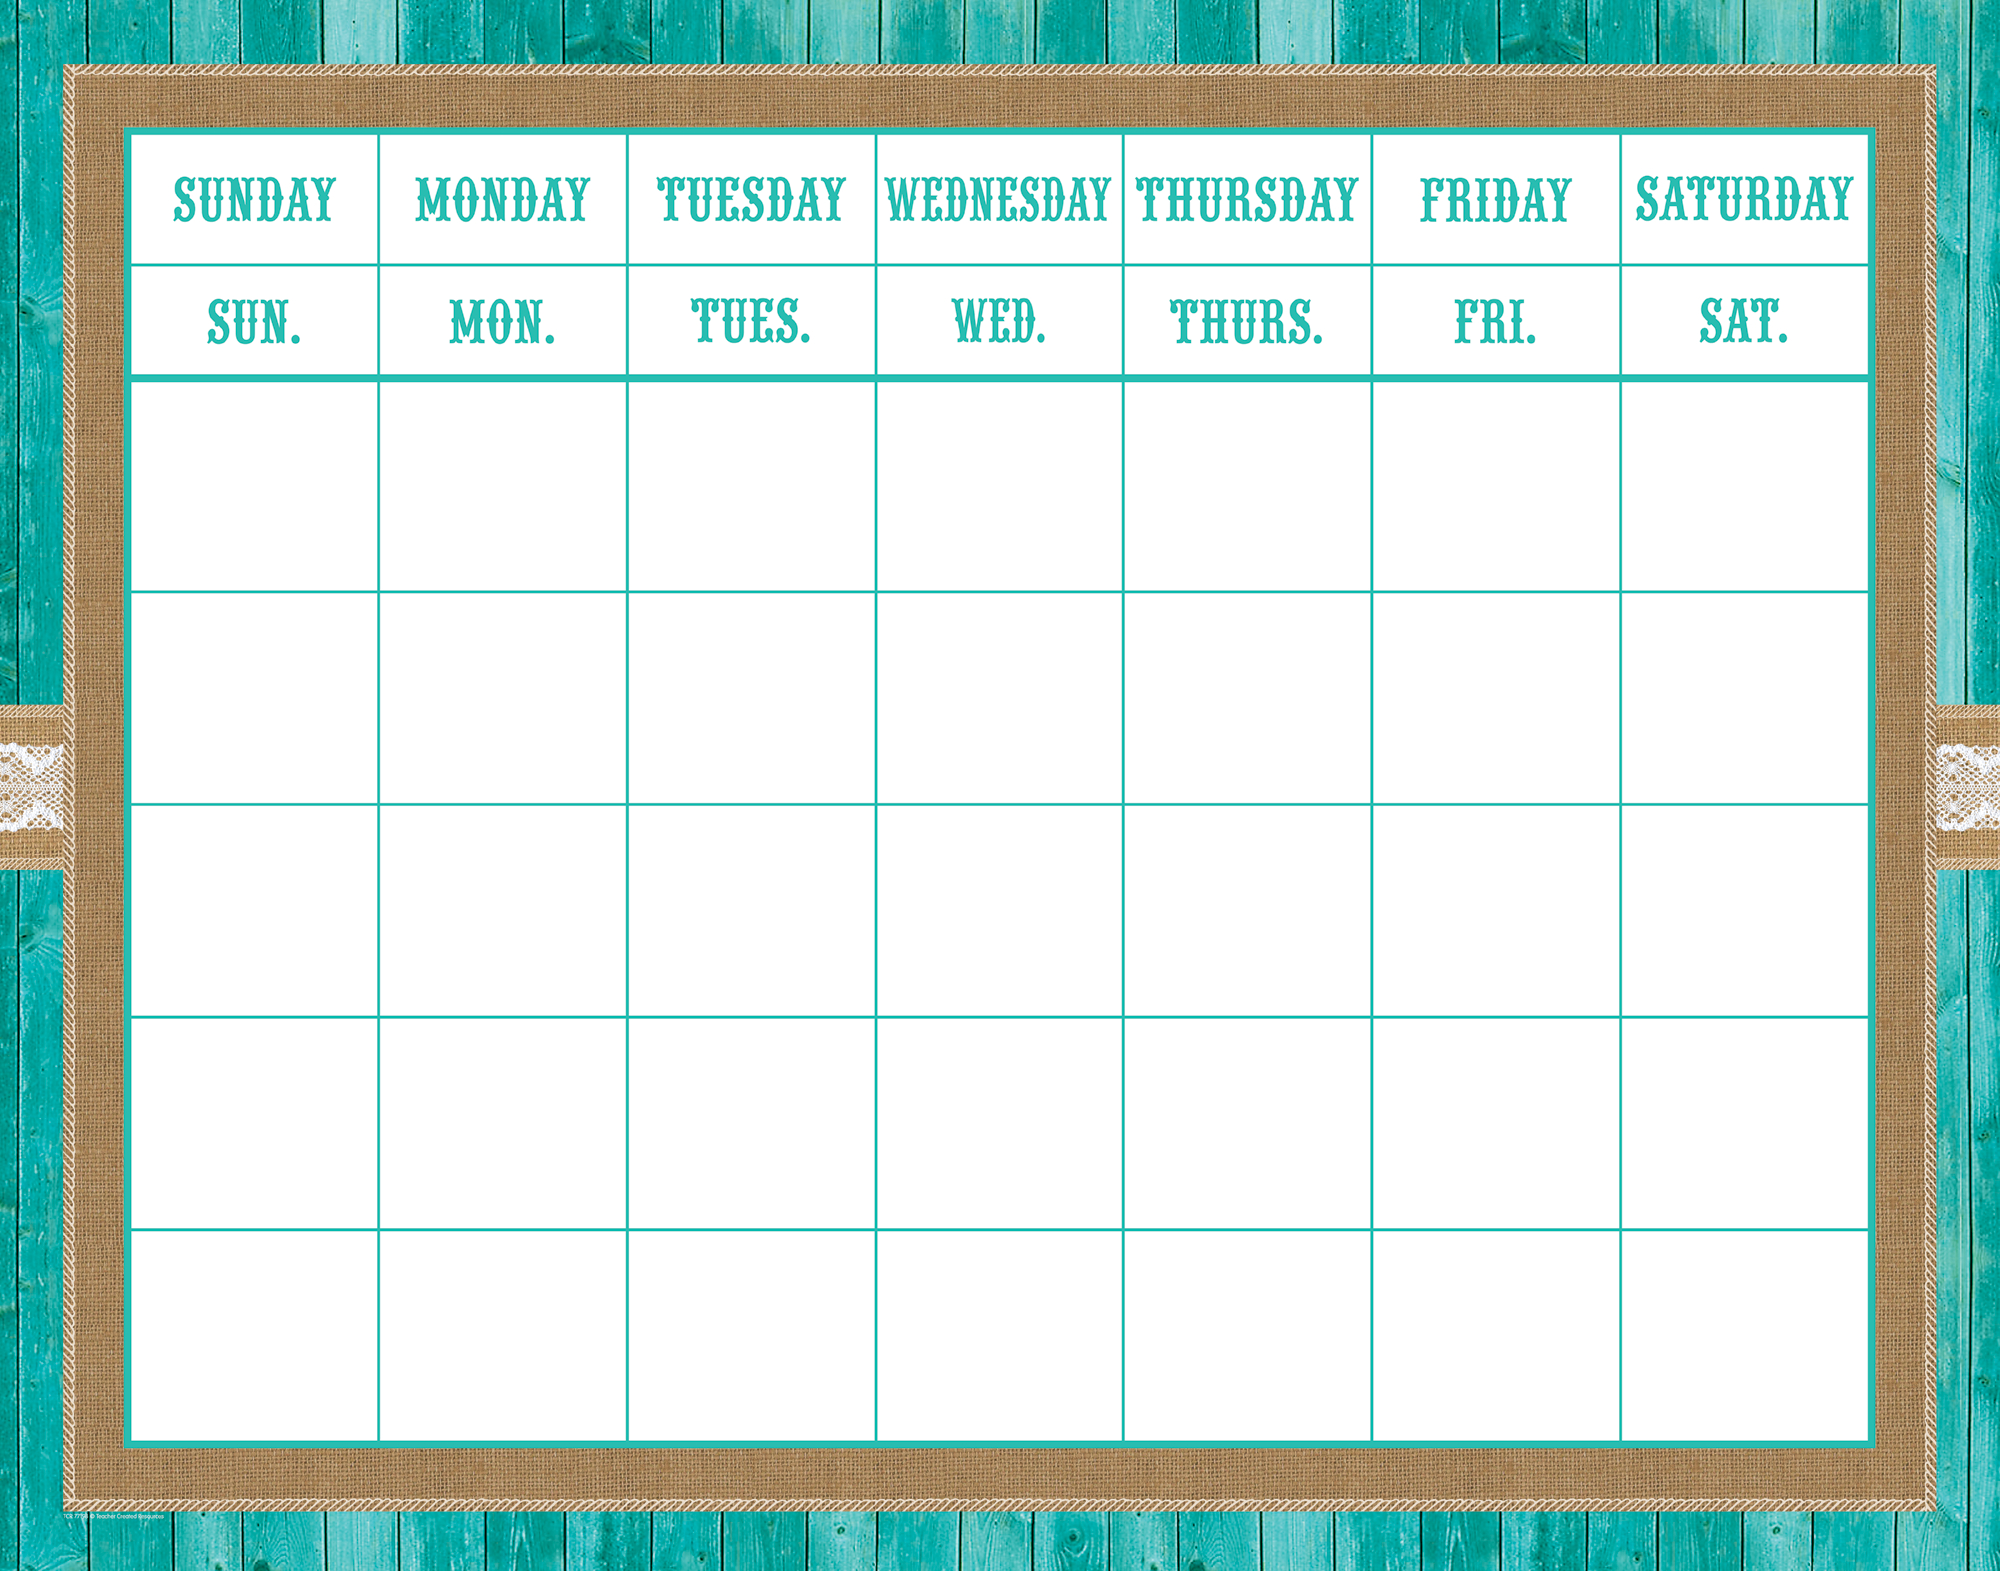 Shabby Chic Calendar Grid | Shabby Chicburlap Classroom with regard to Calendar With Large Squares